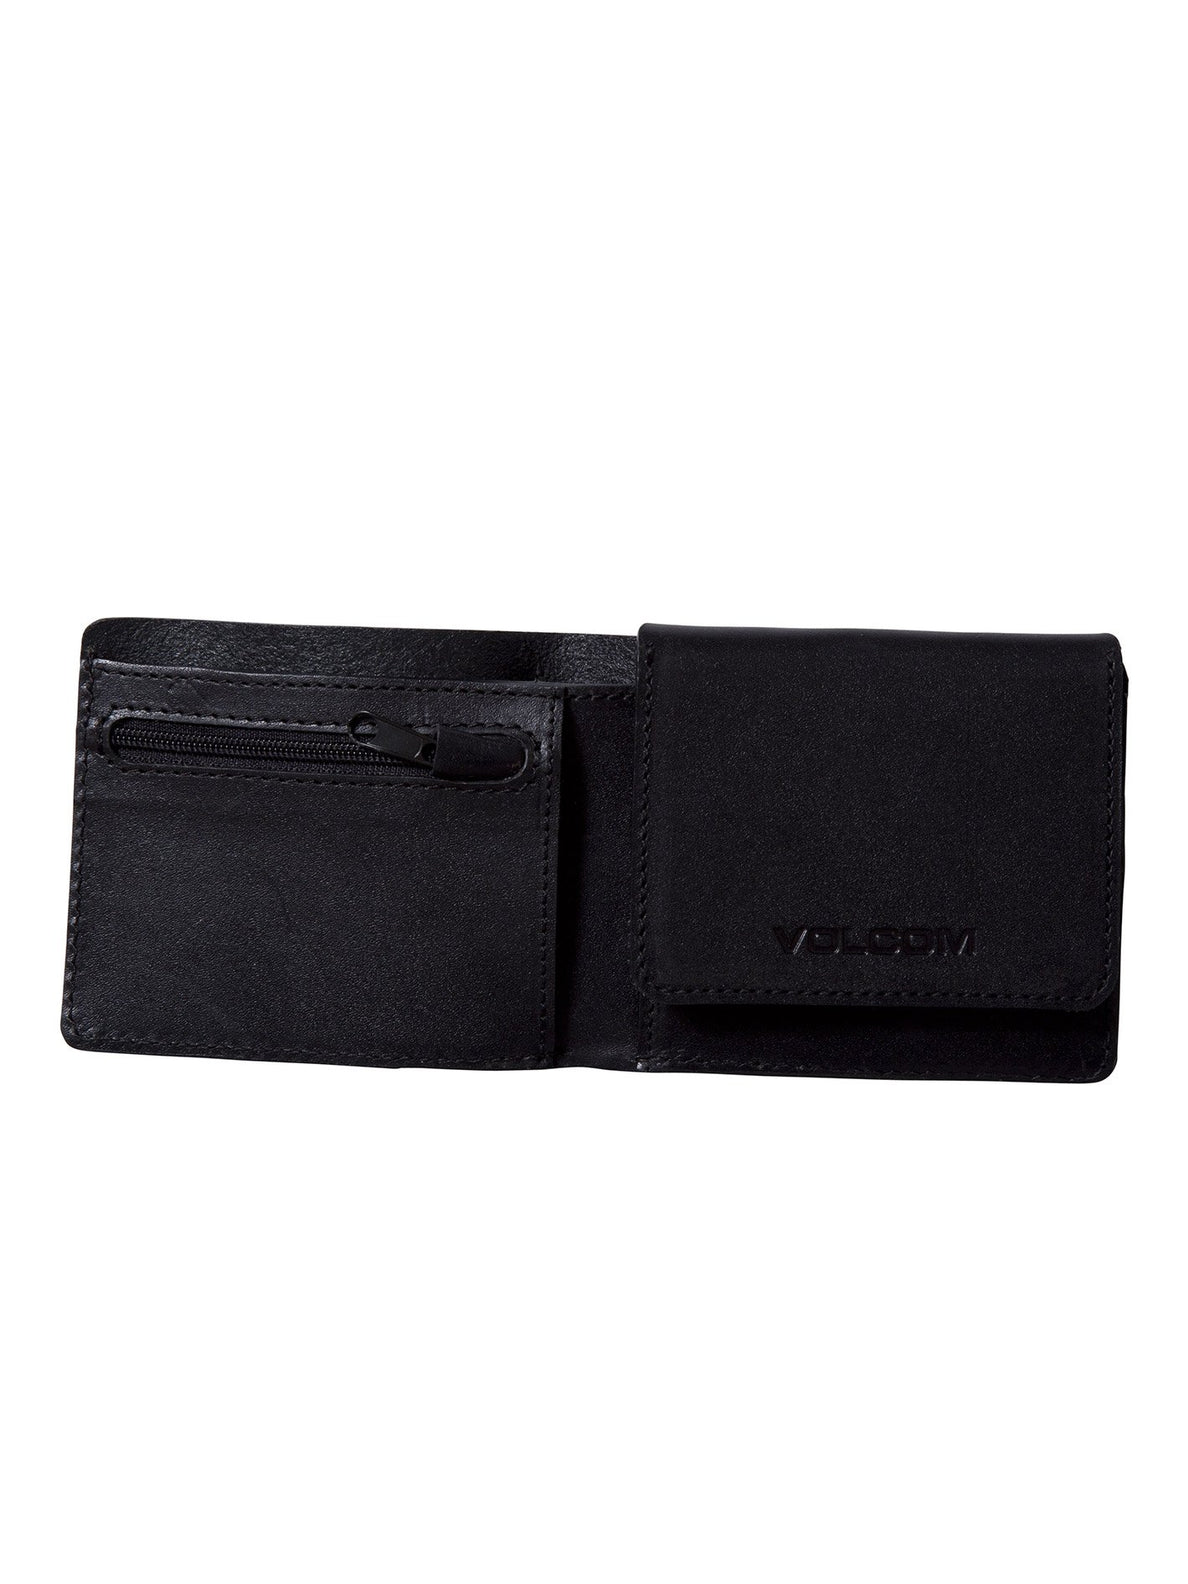 3Fold Leather Wallet - Black (D6011955_BLK) [1]